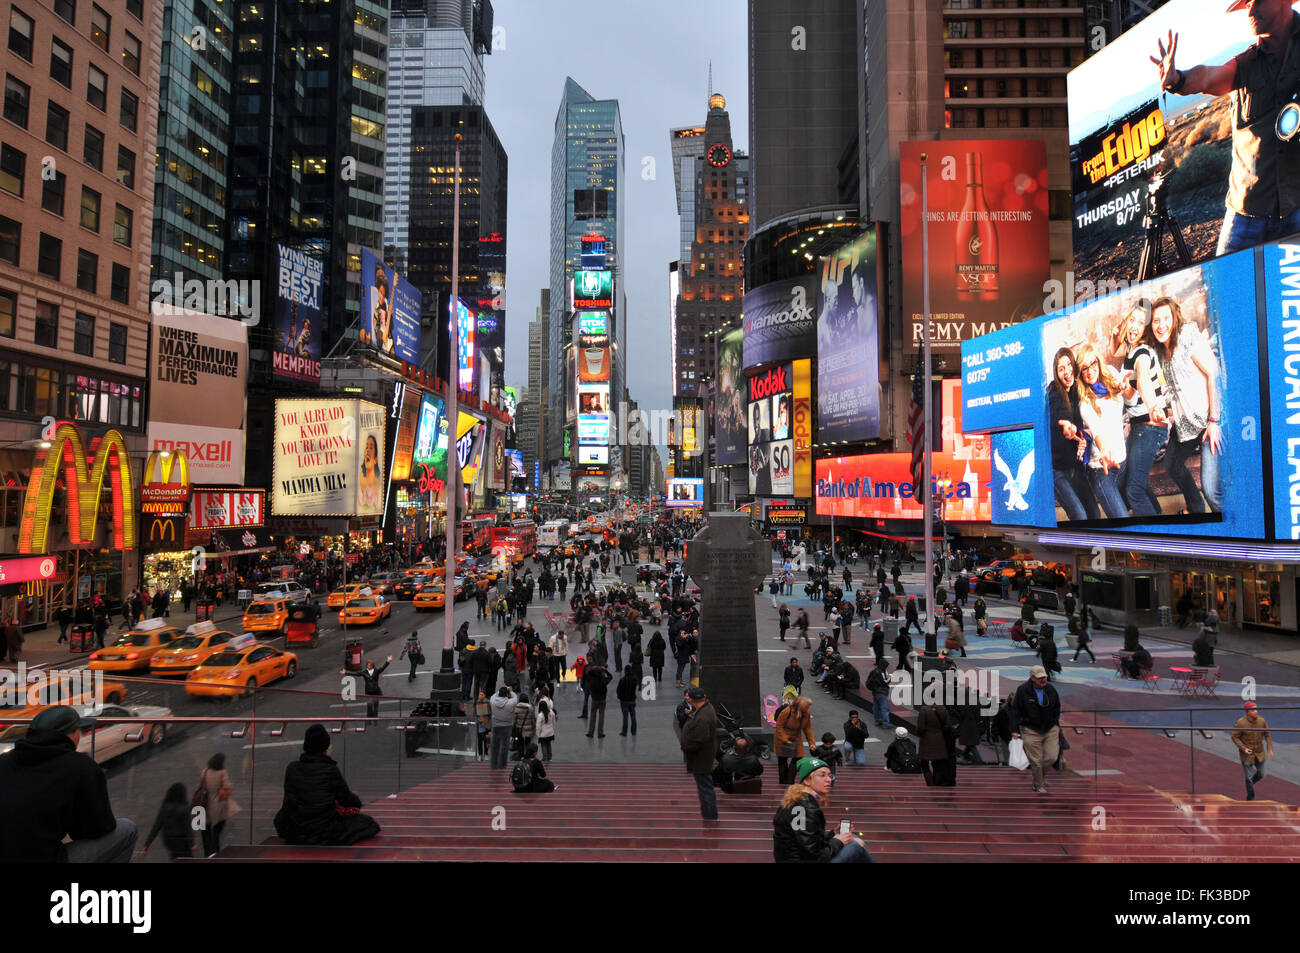 NEW YORK CITY, NY, USA - MARCH 2011: Times Square, New York City, one of the busiest and crowded streets in Manhattan - Stock Image